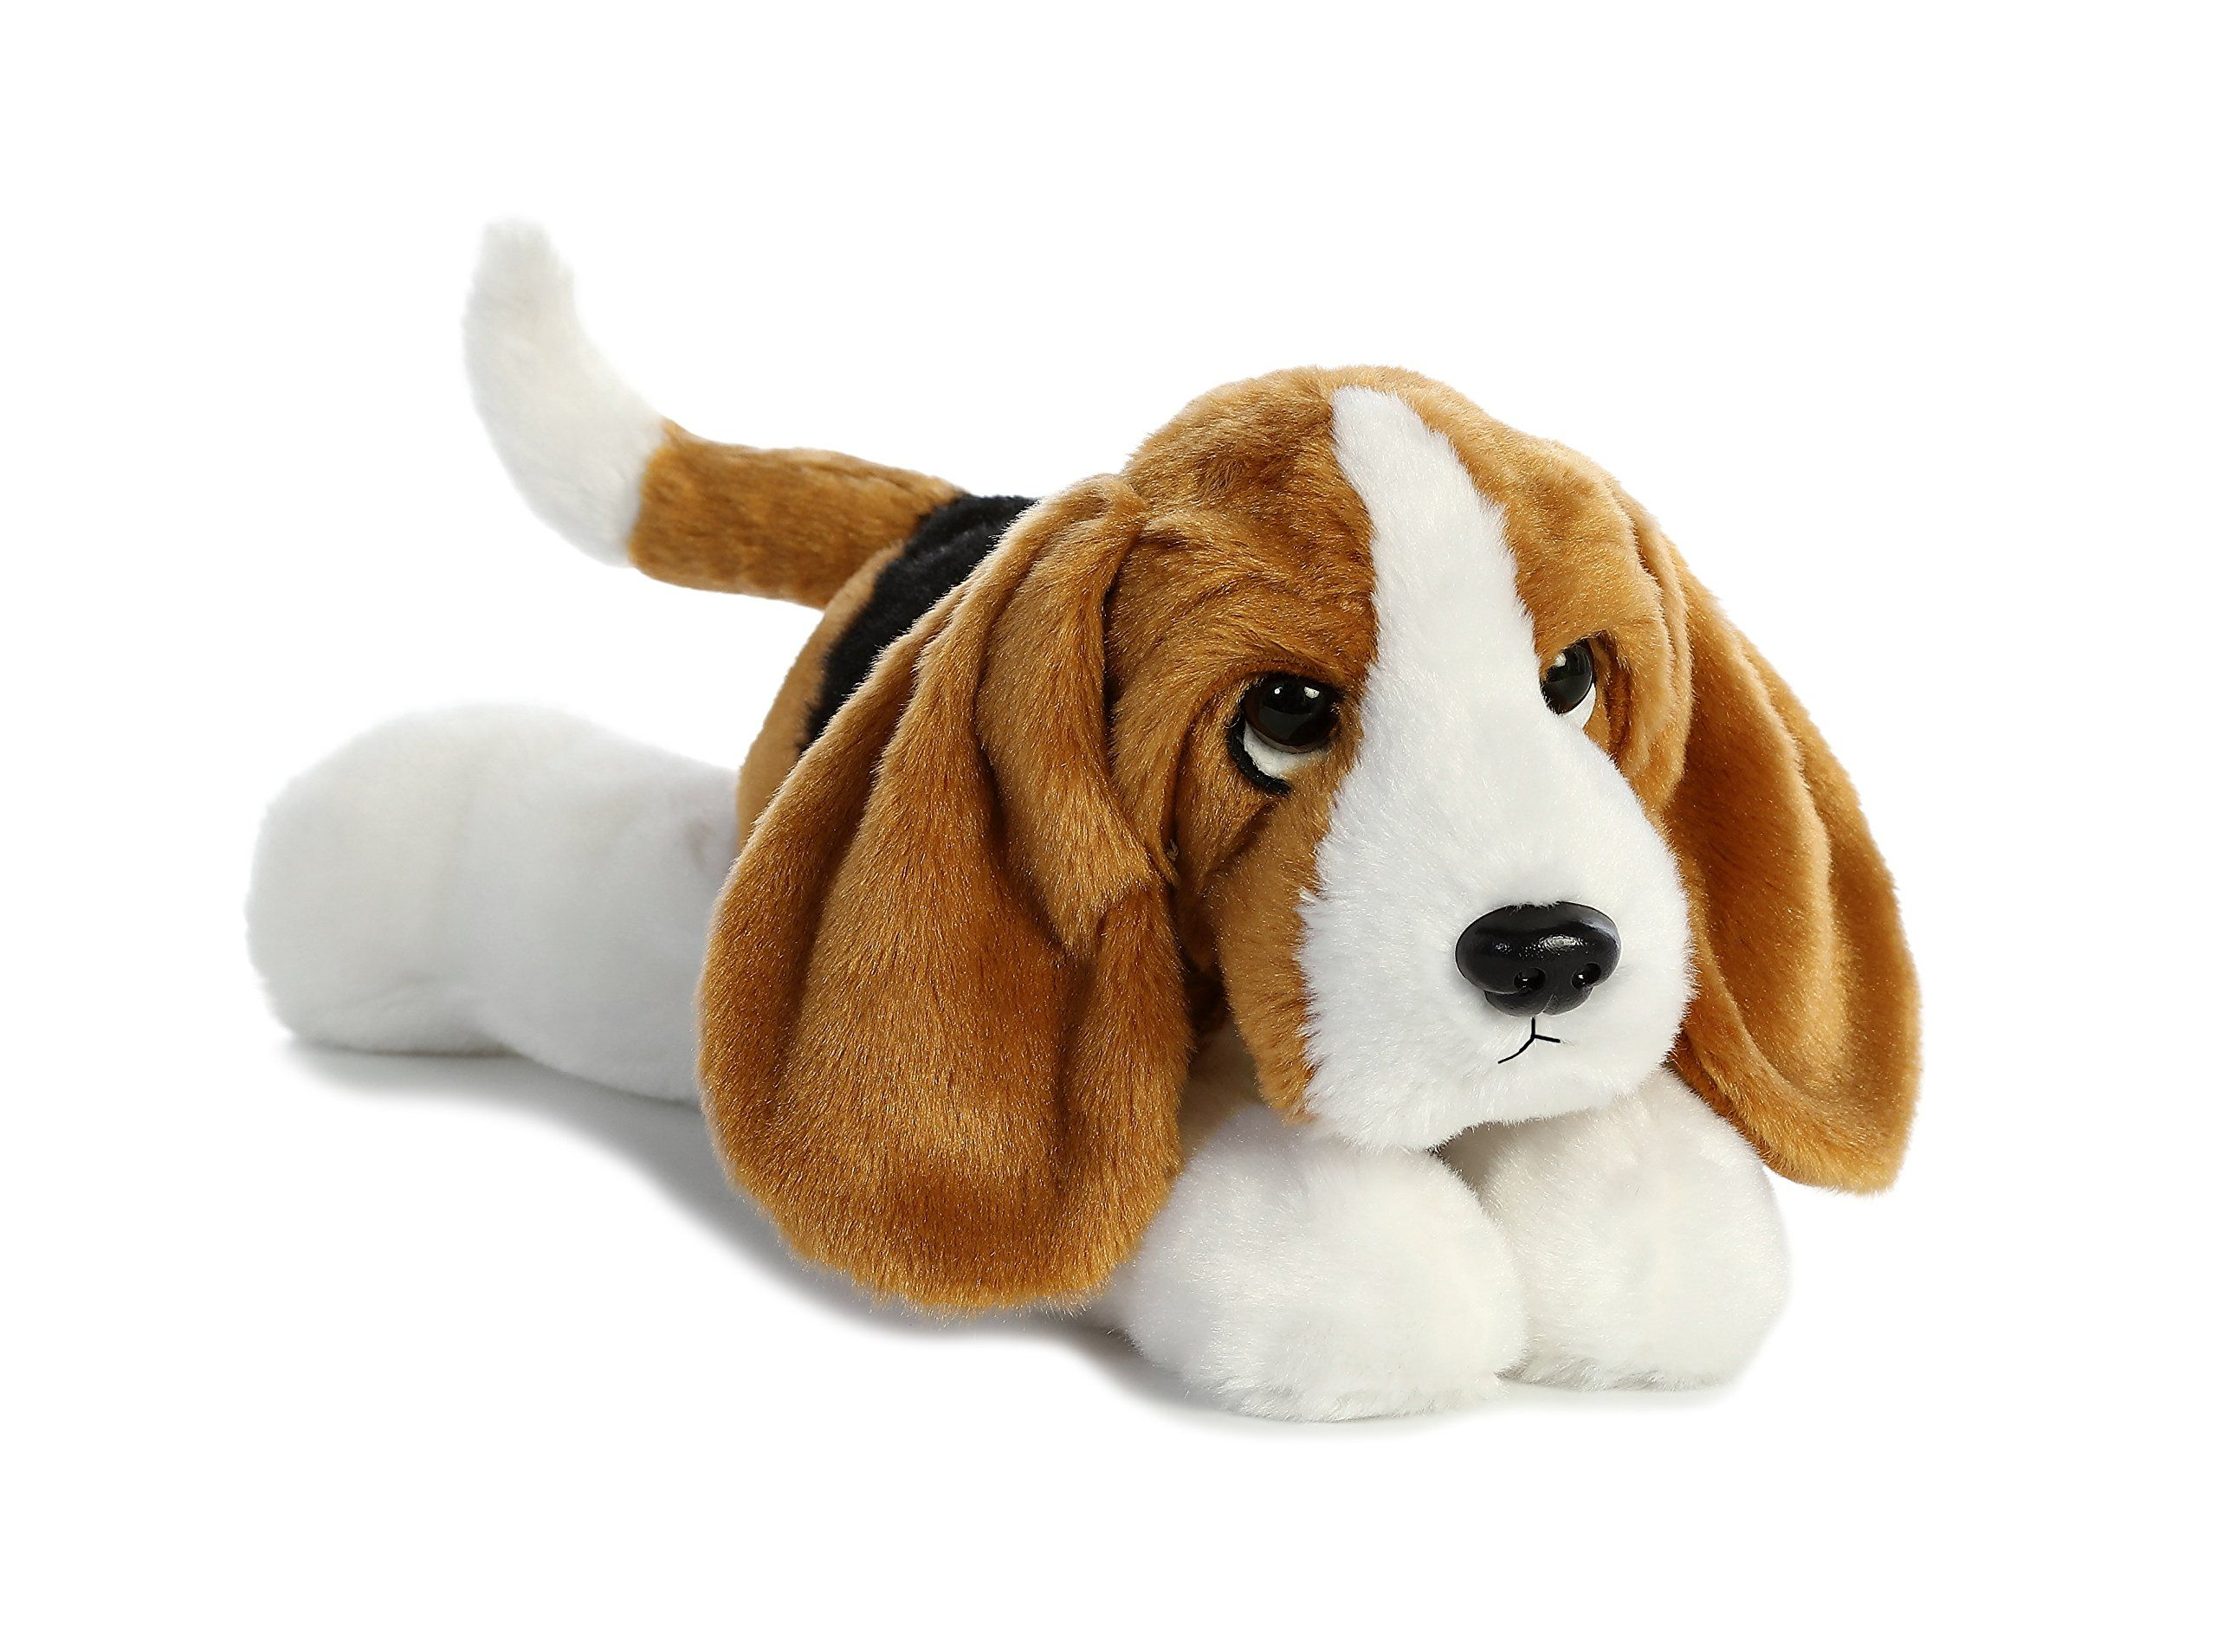 Kamisco Basset Hound Pets And Other Trending Products For Sale At